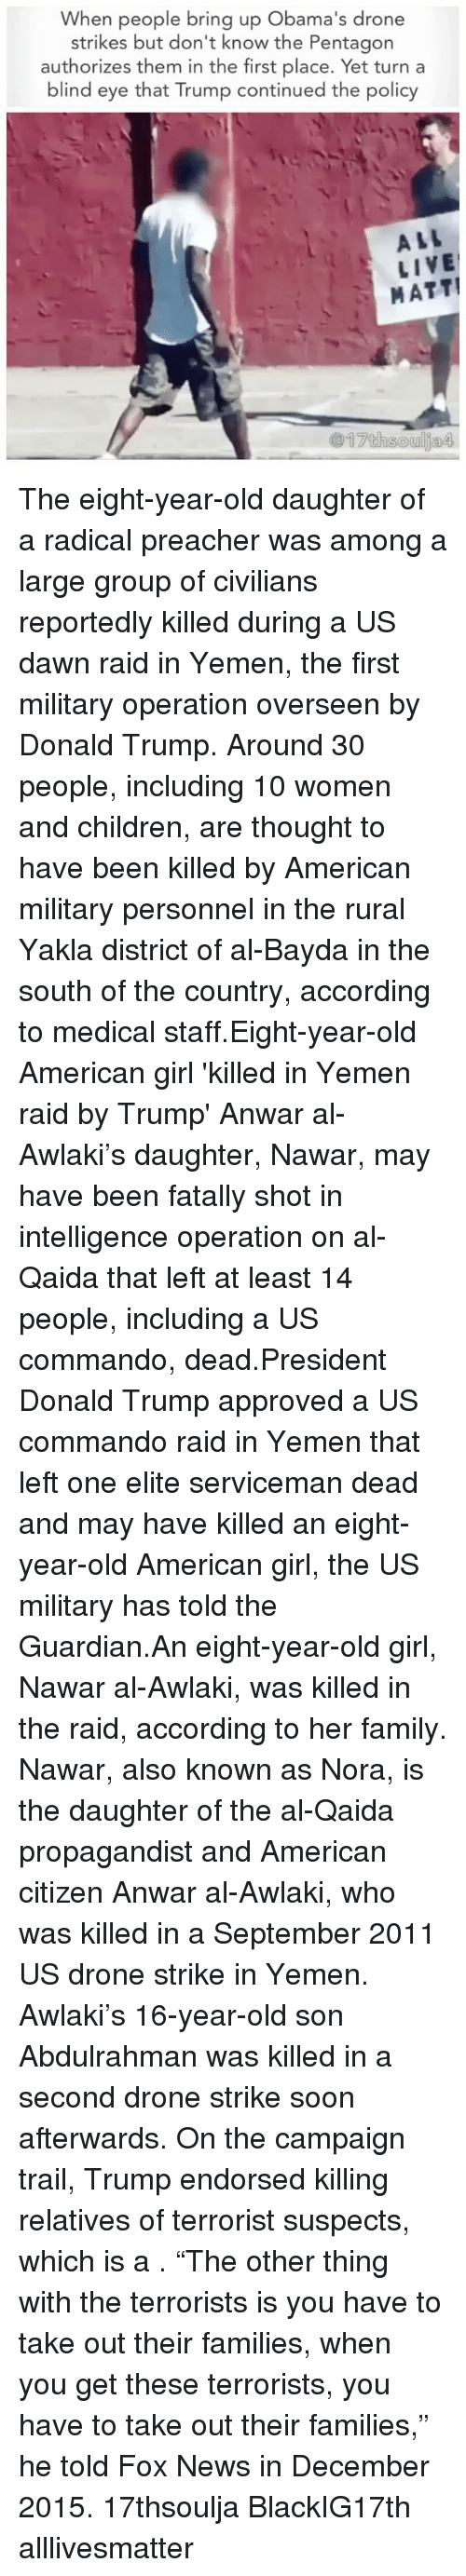 "commandos: When people bring up Obama's drone  strikes but don't know the Pentagon  authorizes them in the first place. Yet turn a  blind eye that Trump continued the policy  ALL  LIVE  MATT! The eight-year-old daughter of a radical preacher was among a large group of civilians reportedly killed during a US dawn raid in Yemen, the first military operation overseen by Donald Trump. Around 30 people, including 10 women and children, are thought to have been killed by American military personnel in the rural Yakla district of al-Bayda in the south of the country, according to medical staff.Eight-year-old American girl 'killed in Yemen raid <approved >by Trump' Anwar al-Awlaki's daughter, Nawar, may have been fatally shot in intelligence operation on al-Qaida that left at least 14 people, including a US commando, dead.President Donald Trump <personally >approved a US commando raid in Yemen that left one elite serviceman dead and may have killed an eight-year-old American girl, the US military has told the Guardian.An eight-year-old girl, Nawar al-Awlaki, was killed in the raid, according to her family. Nawar, also known as Nora, is the daughter of the al-Qaida propagandist and American citizen Anwar al-Awlaki, who was killed in a September 2011 US drone strike in Yemen. Awlaki's 16-year-old son Abdulrahman was killed in a second drone strike soon afterwards. On the campaign trail, Trump endorsed killing relatives of terrorist suspects, which is a <war crime>. ""The other thing with the terrorists is you have to take out their families, when you get these terrorists, you have to take out their families,"" he told Fox News in December 2015. 17thsoulja BlackIG17th alllivesmatter"